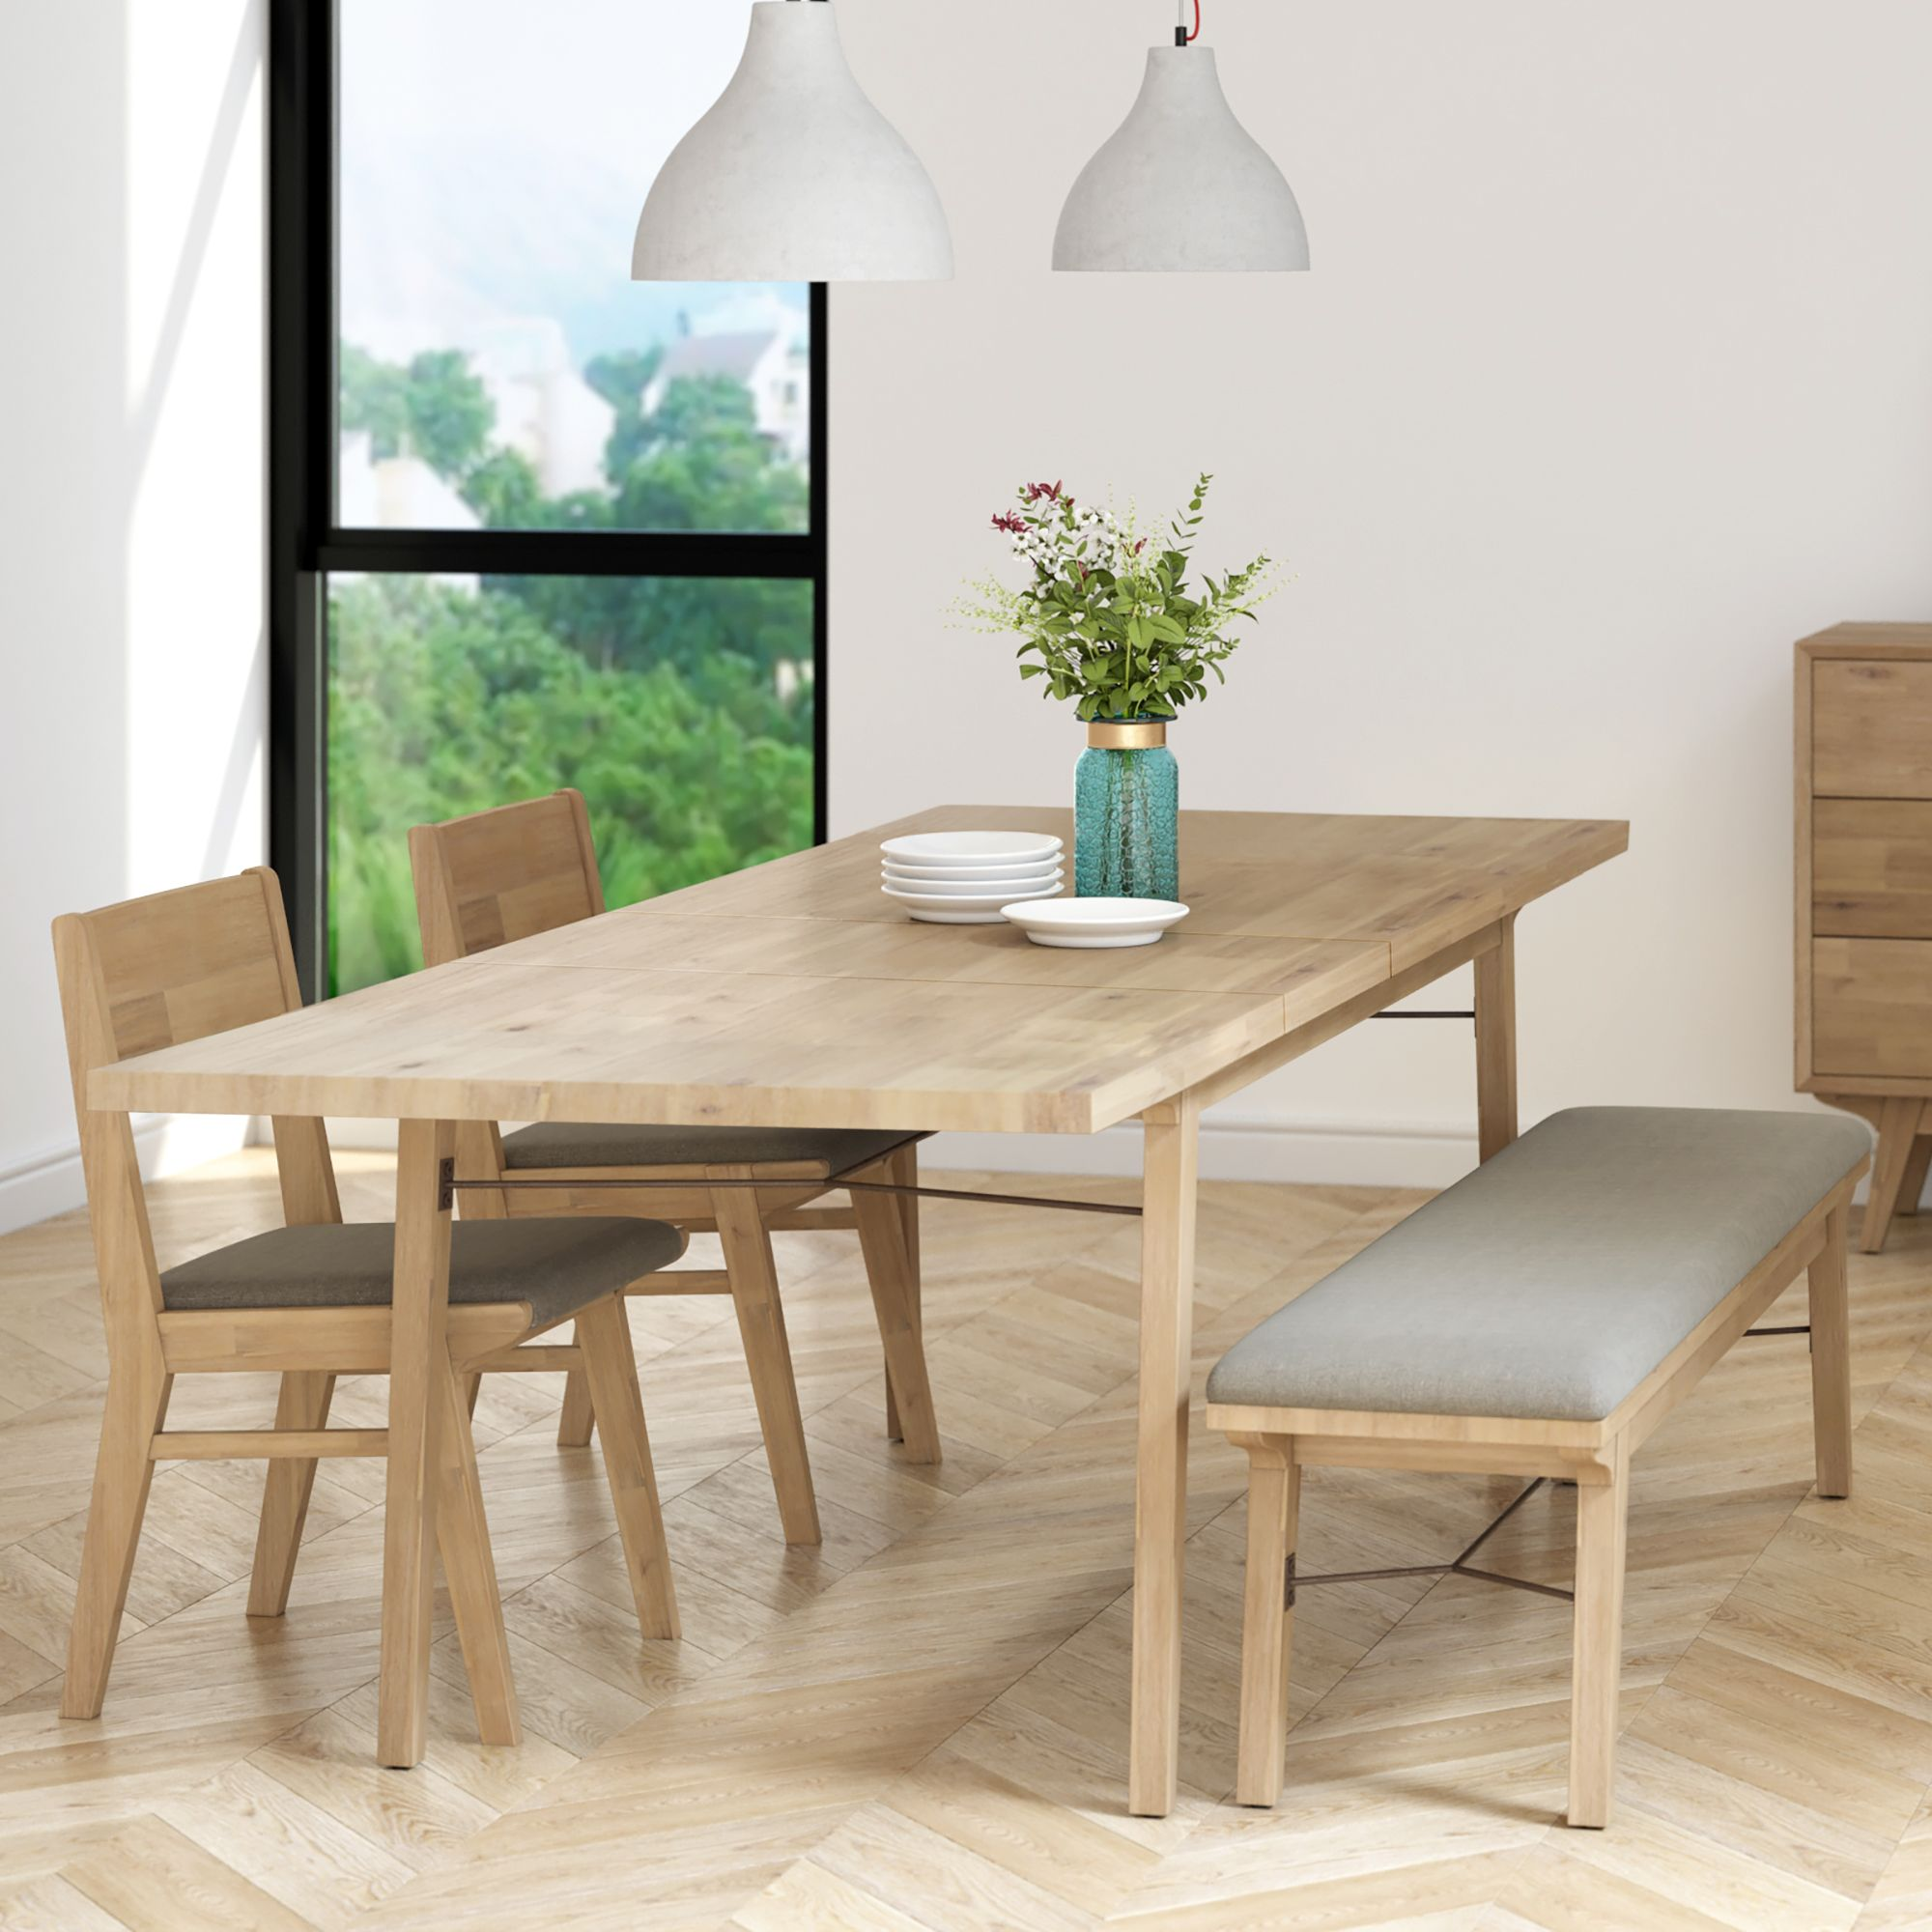 33+ Dining table bench and 2 chairs Best